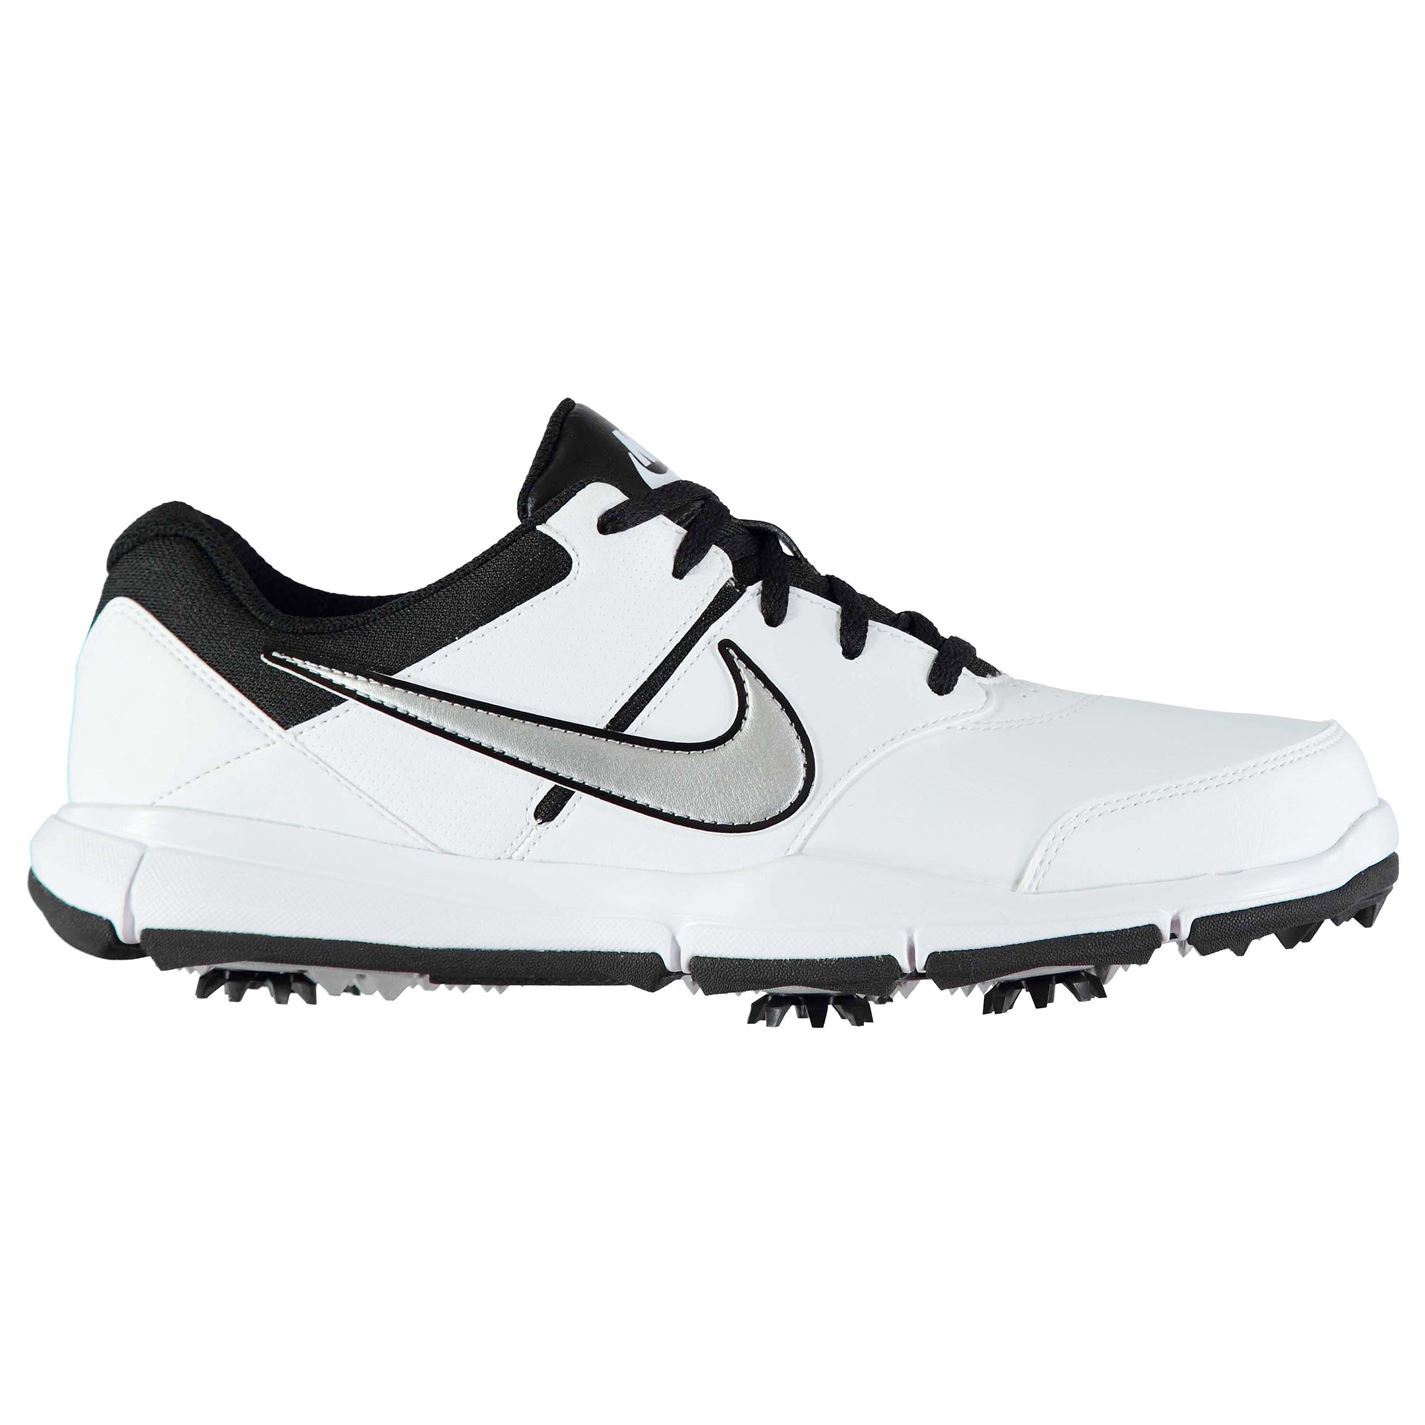 Nike-Durasport-4-Spiked-Golf-Shoes-Mens-Spikes-Footwear thumbnail 20